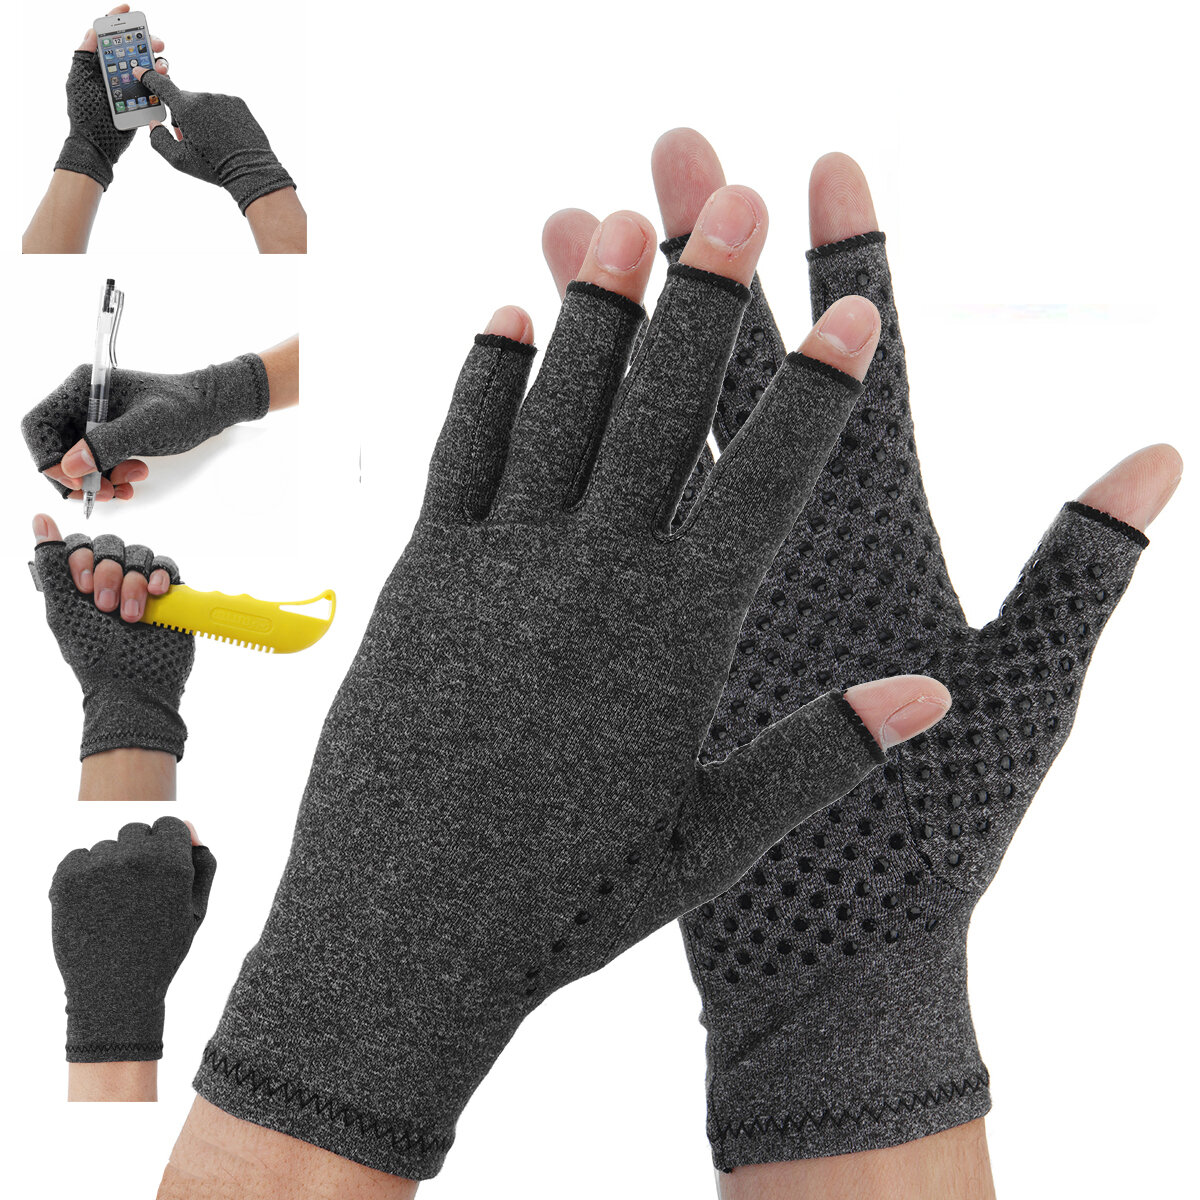 1 Pair Anti Arthritis Gloves Ease Pain Relief Compression Gloves Hand Support Outdoor Fitness Half Finger Gloves